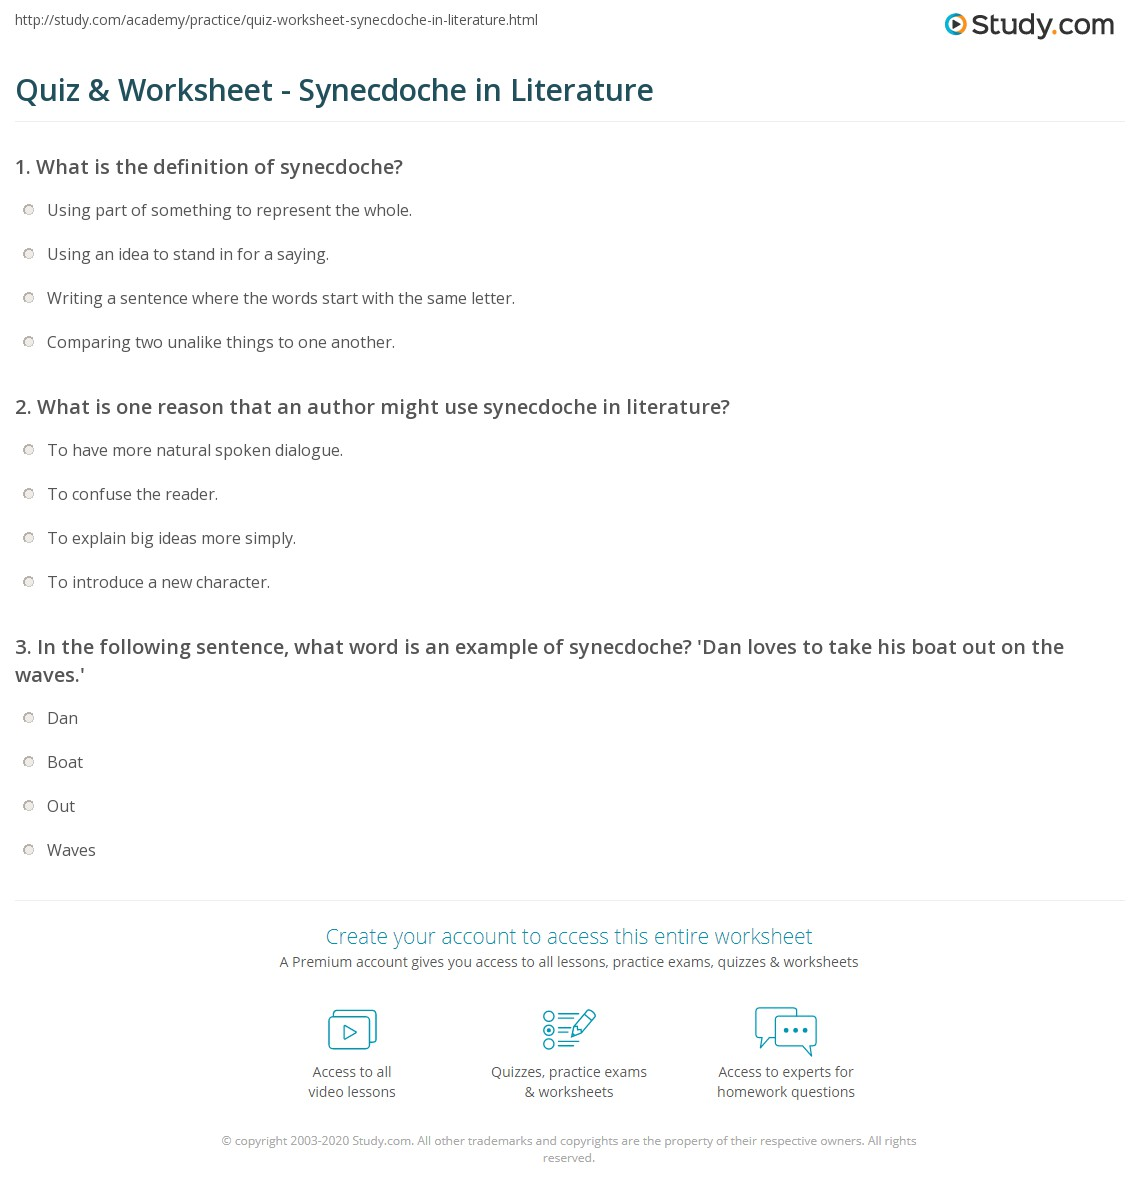 quiz worksheet synecdoche in literature study com